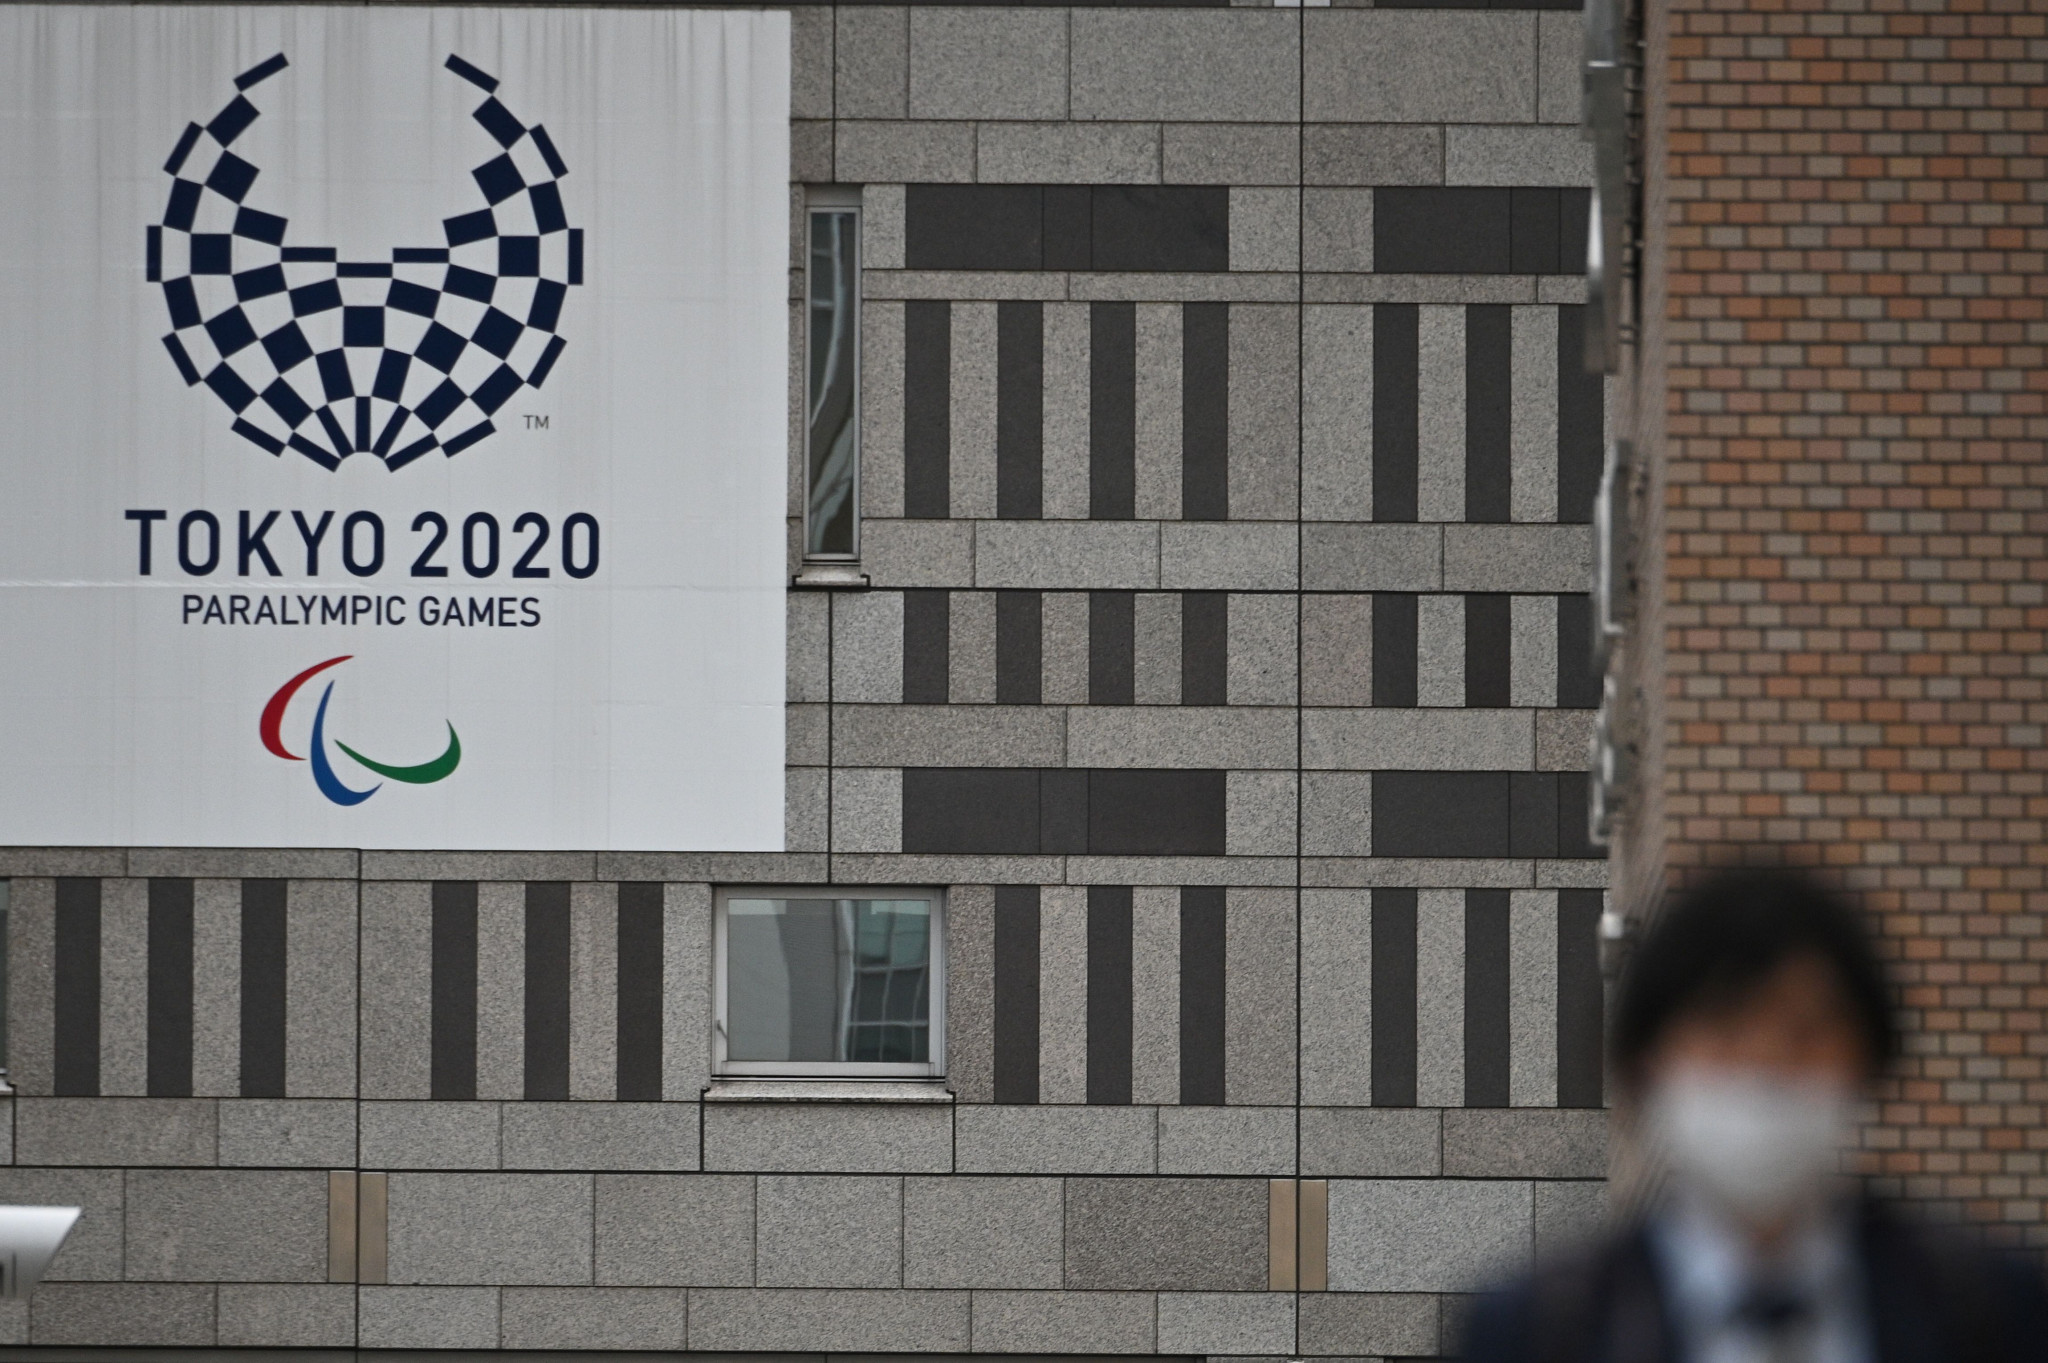 The International Paralympic Committee has announced a reduction in the number of accredited guests for the Tokyo 2020 Paralympics ©Getty Images